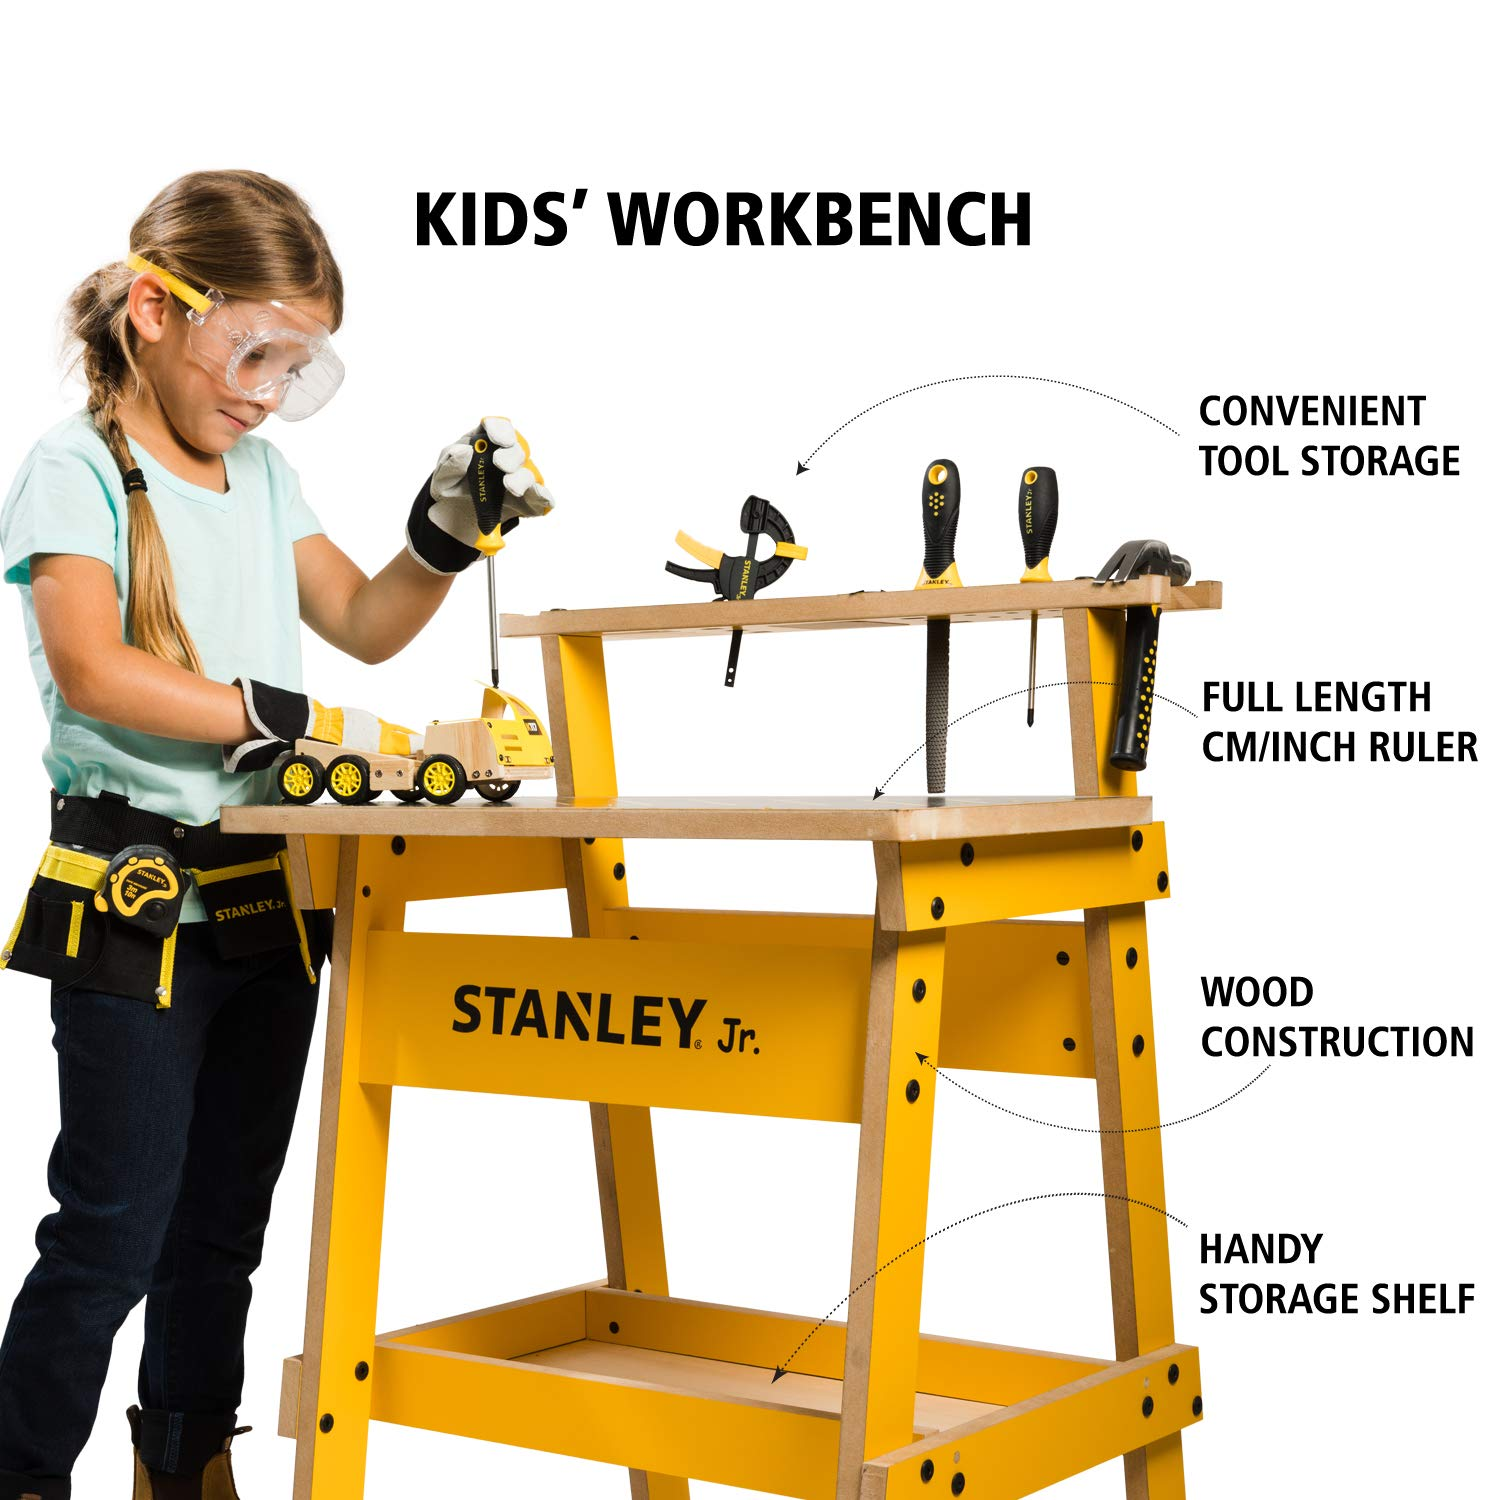 Peachy Stanley Jr Kids Work Bench Real Wood Craft Kits For Kids Fun Working Bench For Kids Kids Workshop Tool Bench Childrens Play Work Bench Gamerscity Chair Design For Home Gamerscityorg